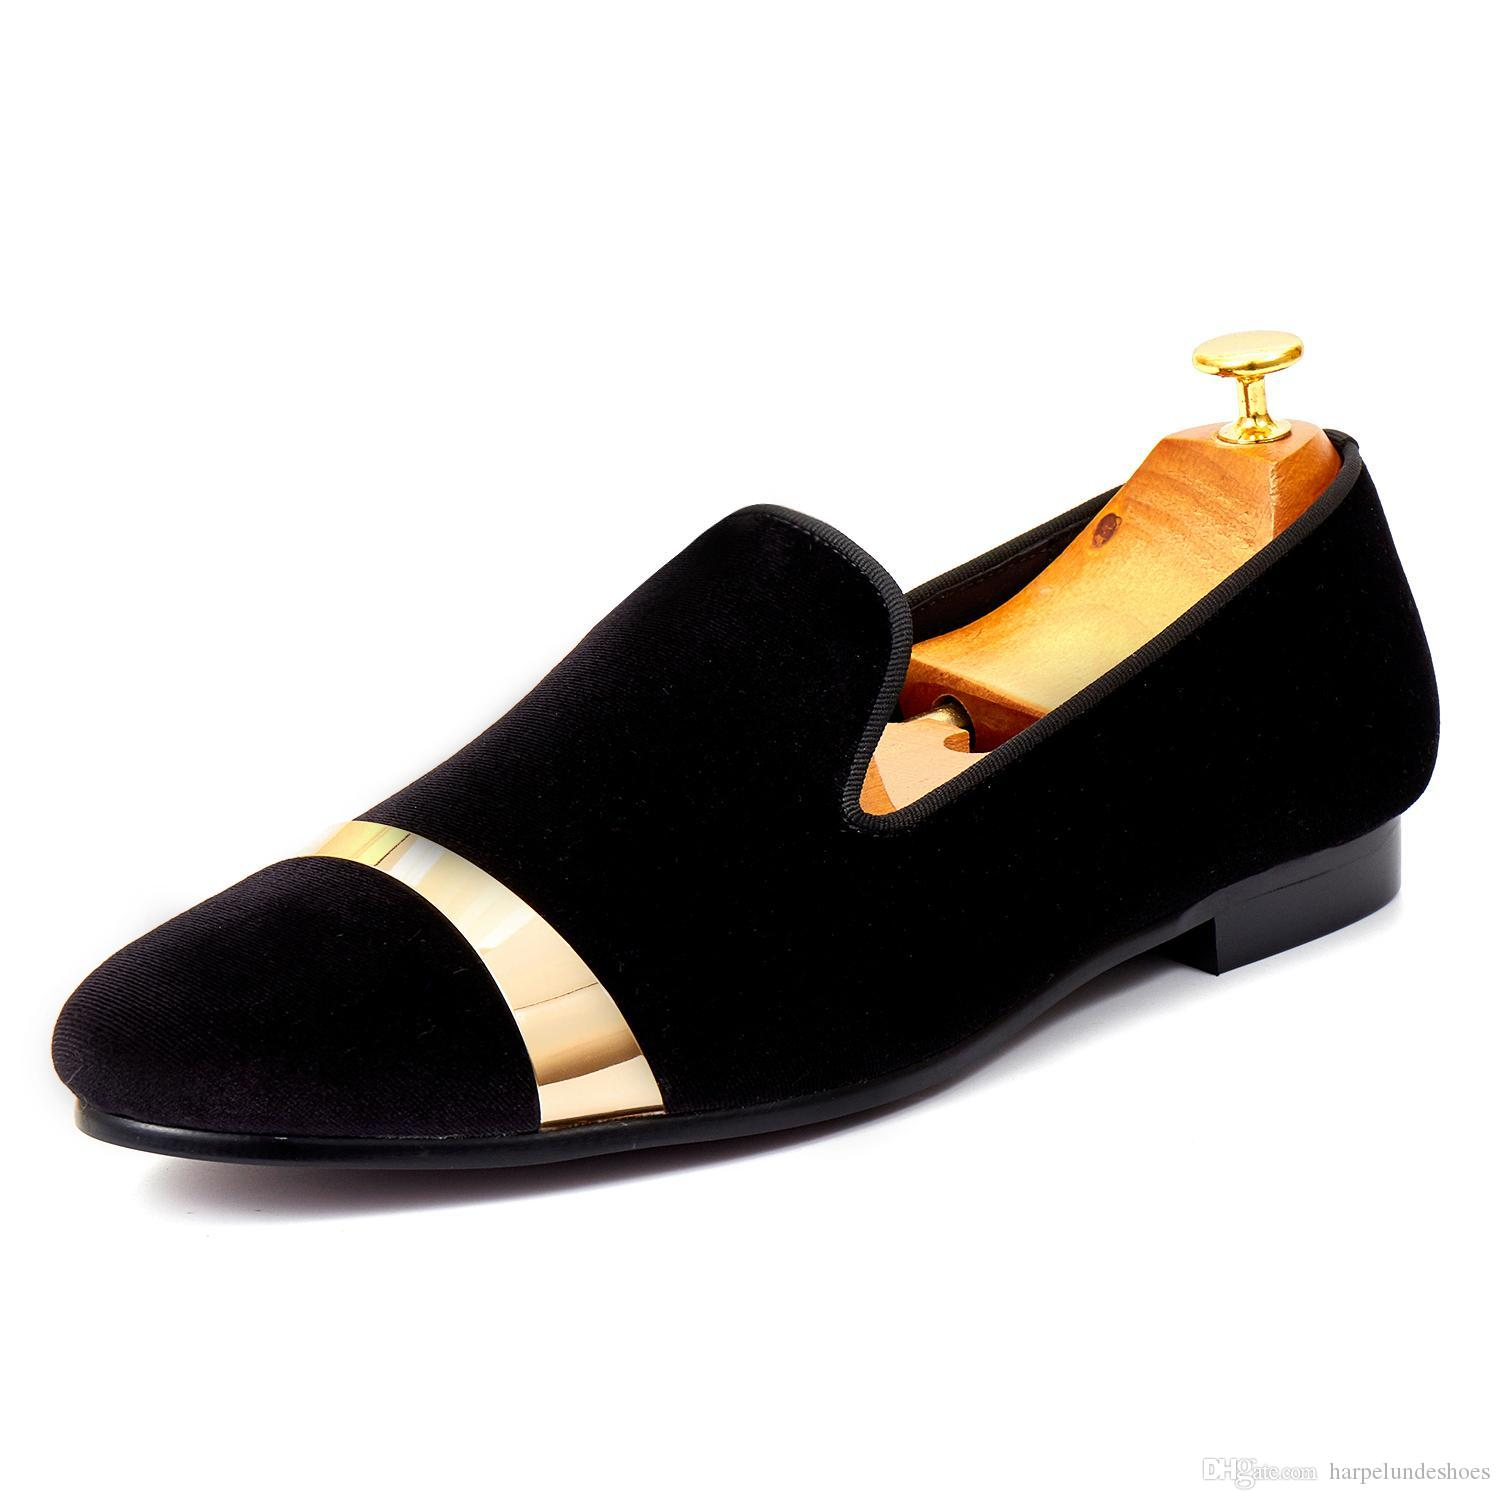 66166cffd Harpelunde Men Dress Shoes With Gold Plate Black Velvet Loafers Handmade  Flats Free Drop Shipping Size 7 14 Mens Boots Shoe From Harpelundeshoes